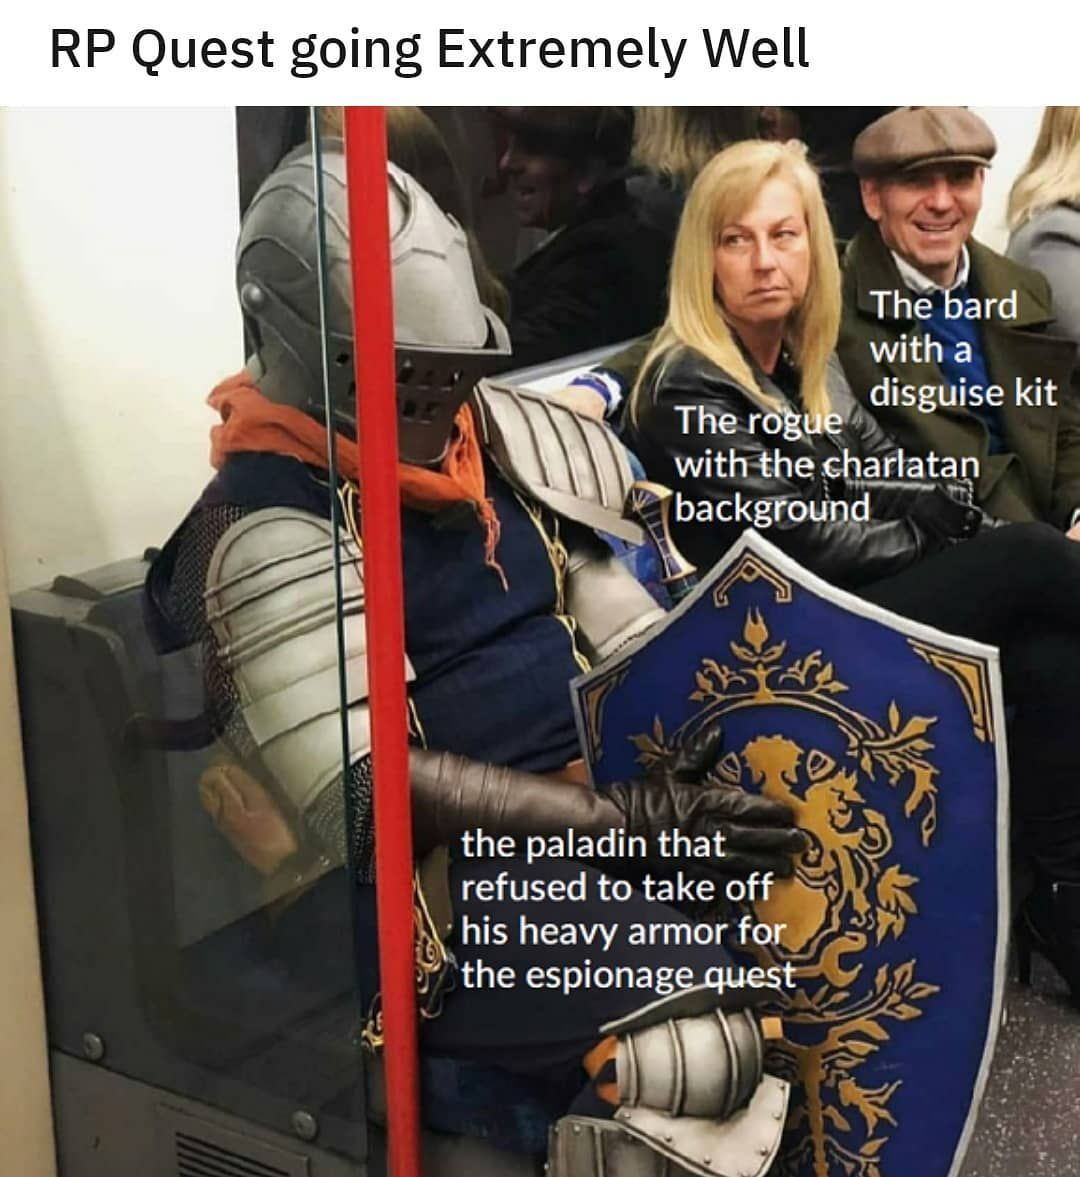 Pin by Icedrum on D&D stuff   Dnd funny, Dungeons and dragons memes